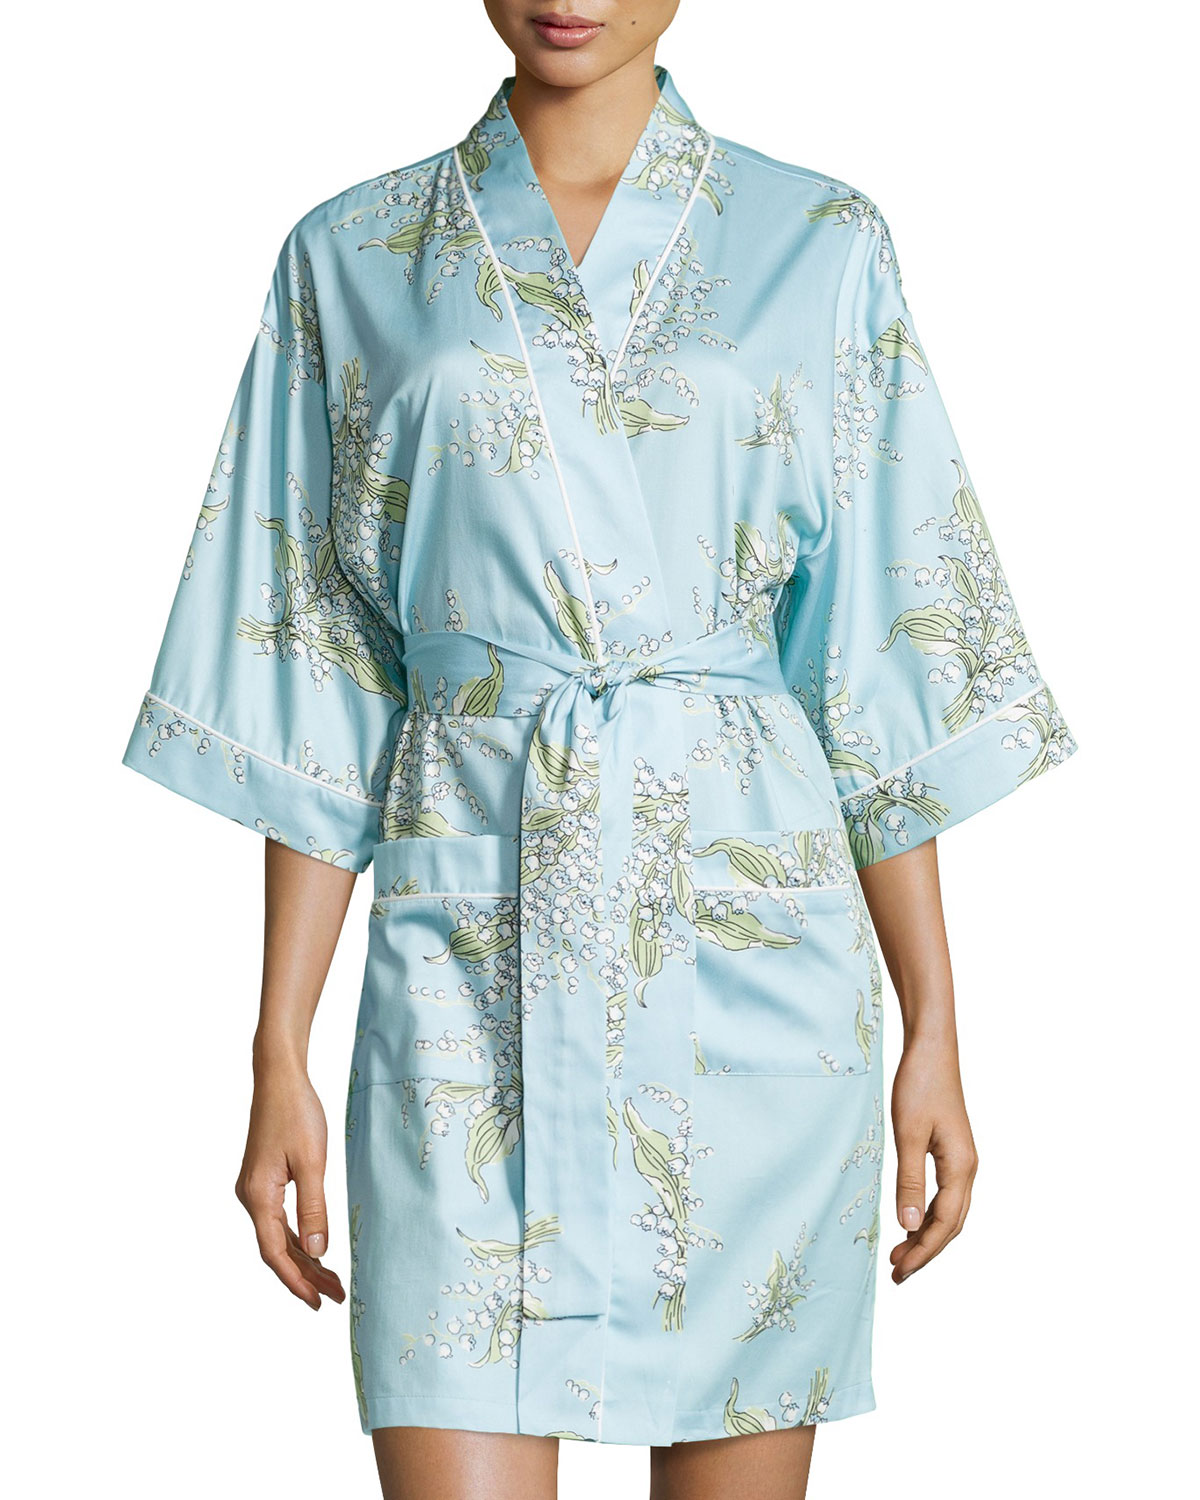 Lily of the Valley 3/4-Sleeve Robe, Turquoise, Size: L (12-14) - Bedhead